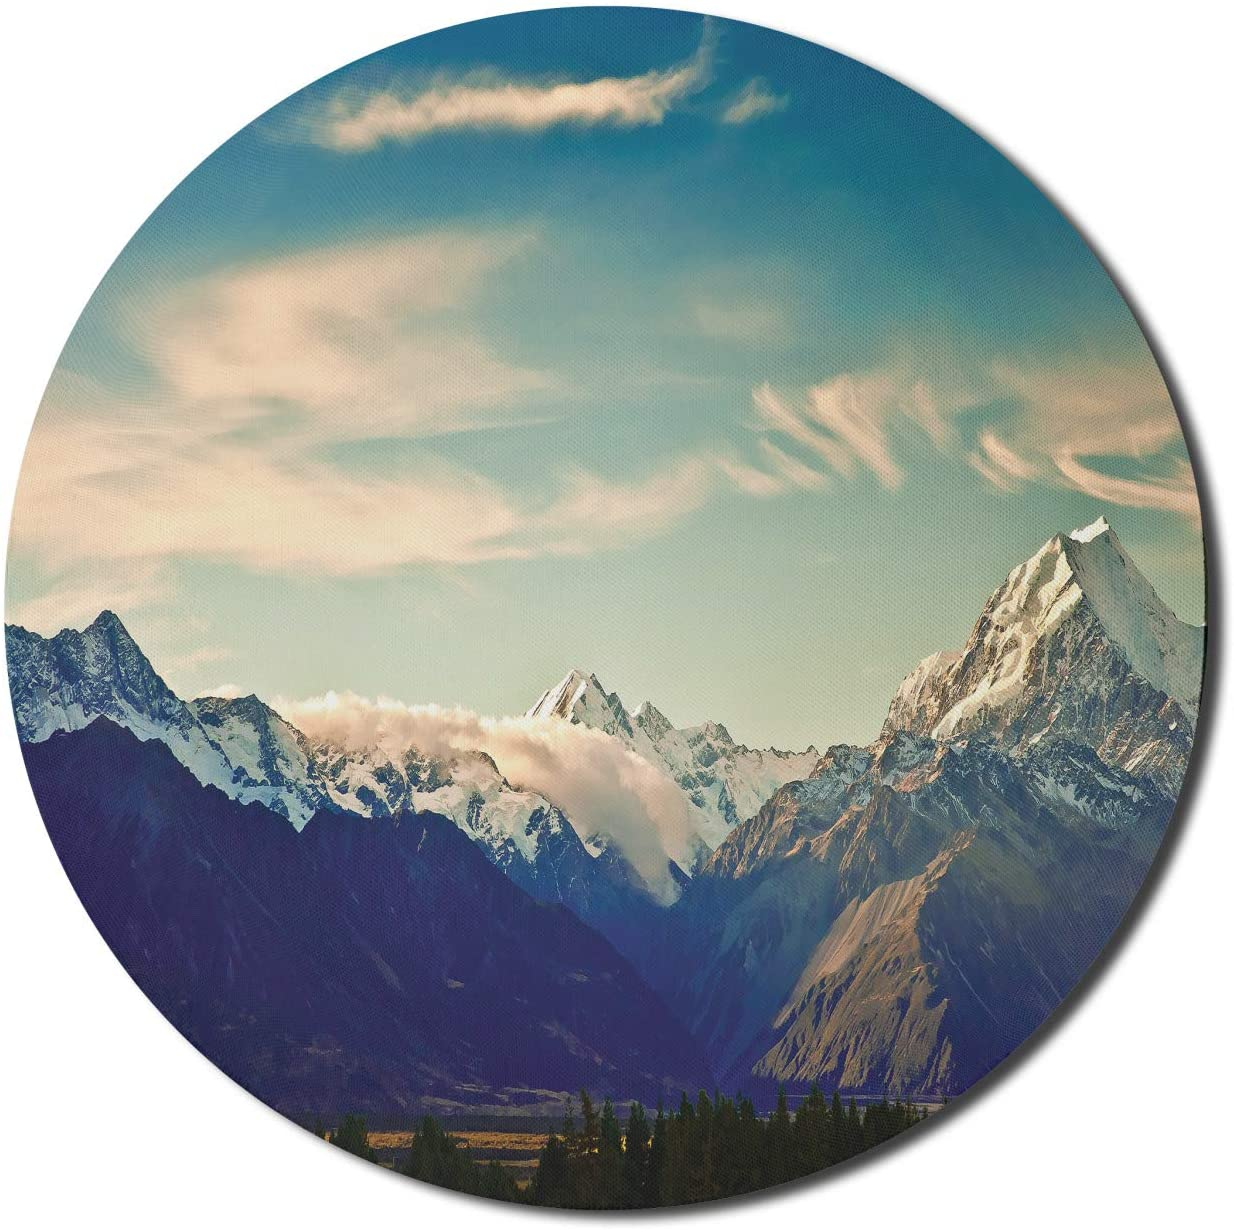 Lunarable Nature Mouse Pad for Computers, New Zealand Scenic Mountain Shot at Mount Cook National Park Alpine Panorama, Round Non-Slip Thick Rubber Modern Gaming Mousepad, 8